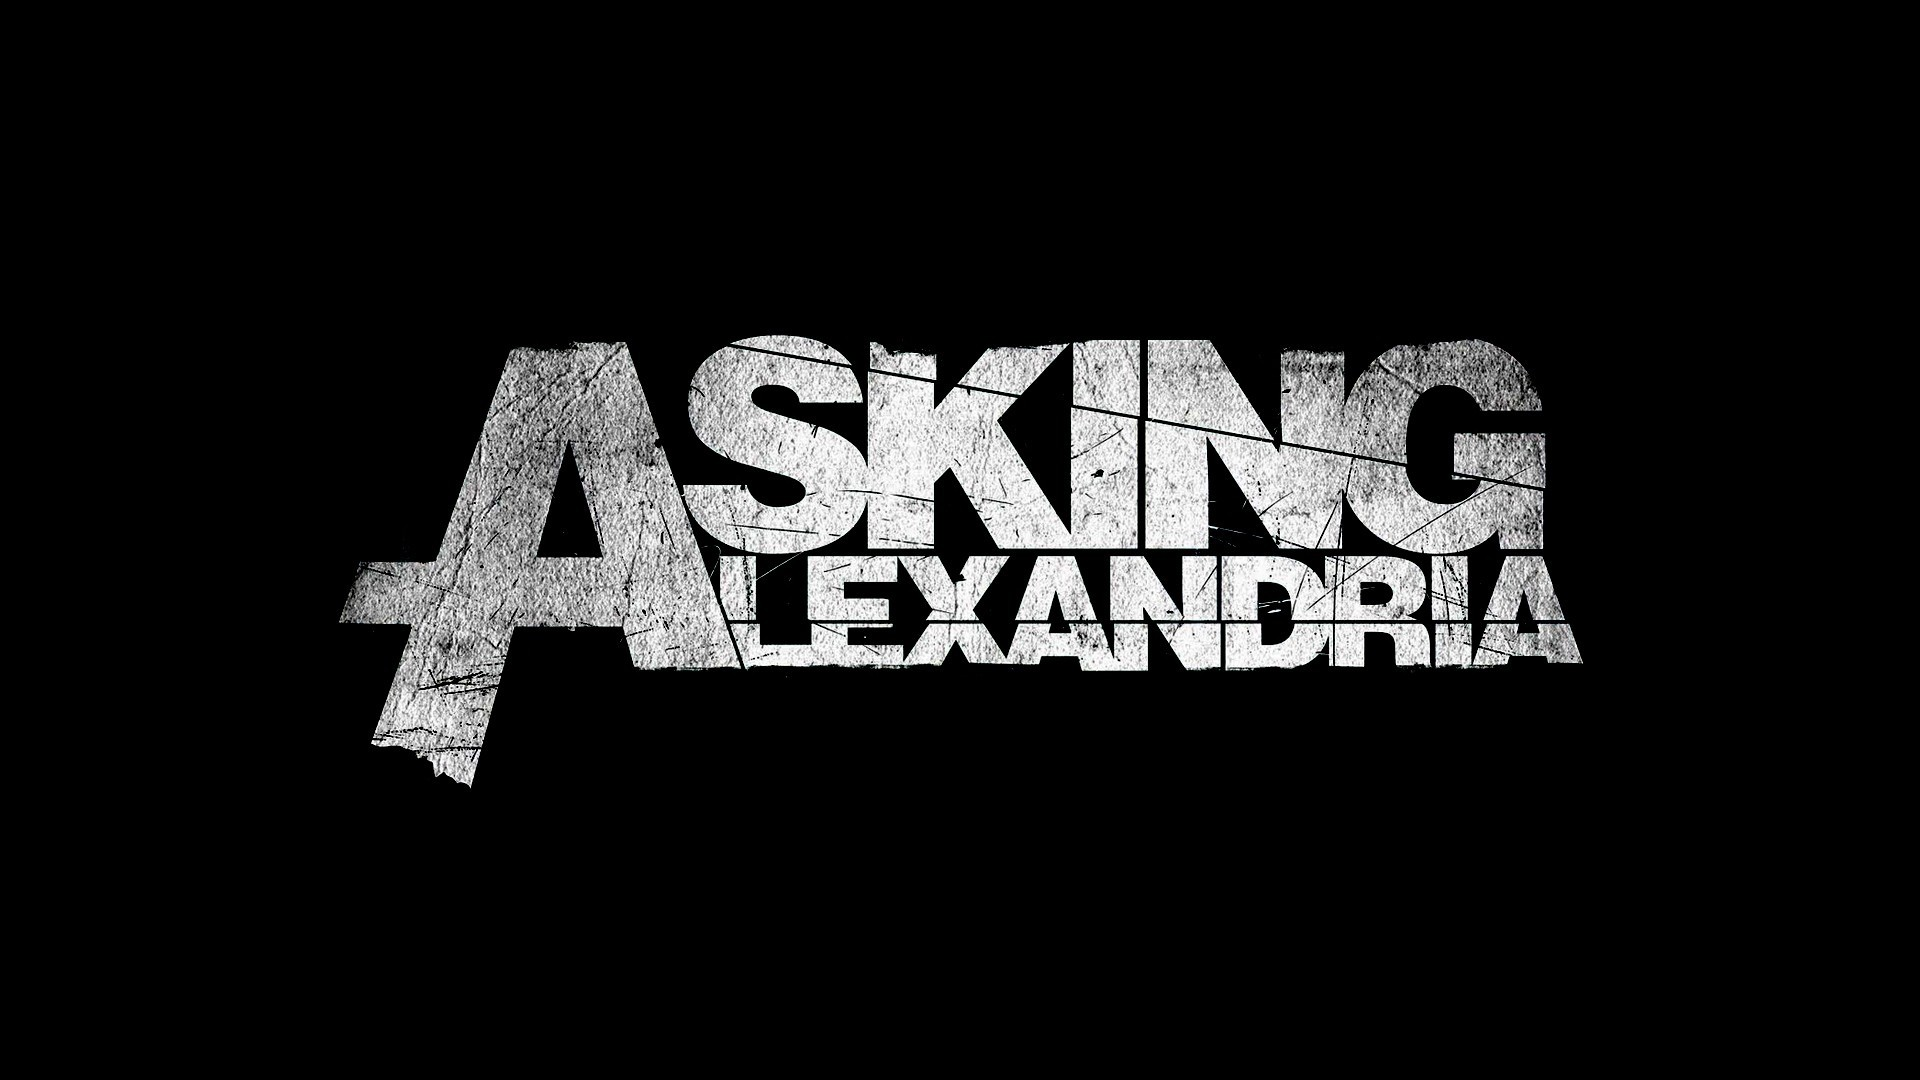 1920x1080 free asking alexandria background hd wallpapers background photos windows  amazing best wallpaper ever samsung wallpapers download pictures 1920×1080  ...